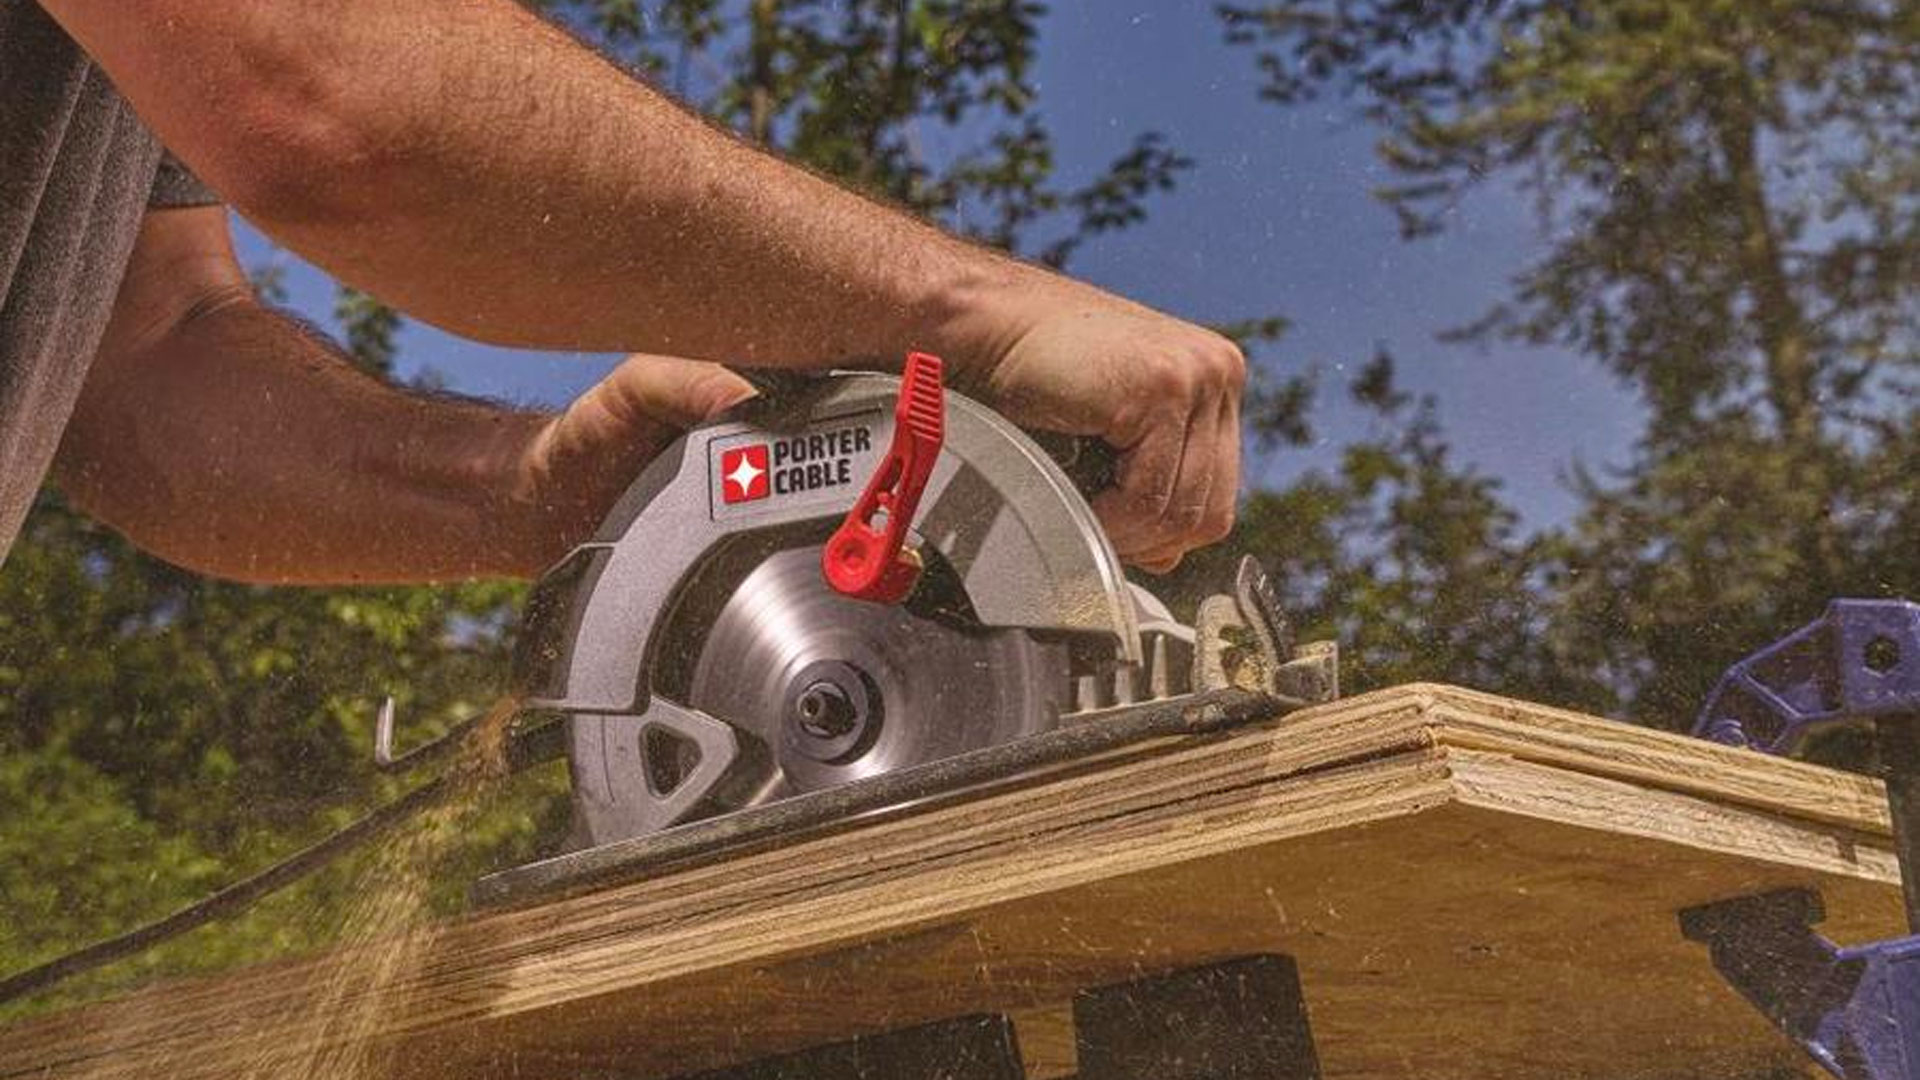 Be ready for weekend projects w/ PORTER-CABLE's 15A circular saw: $30 (Reg. $50)